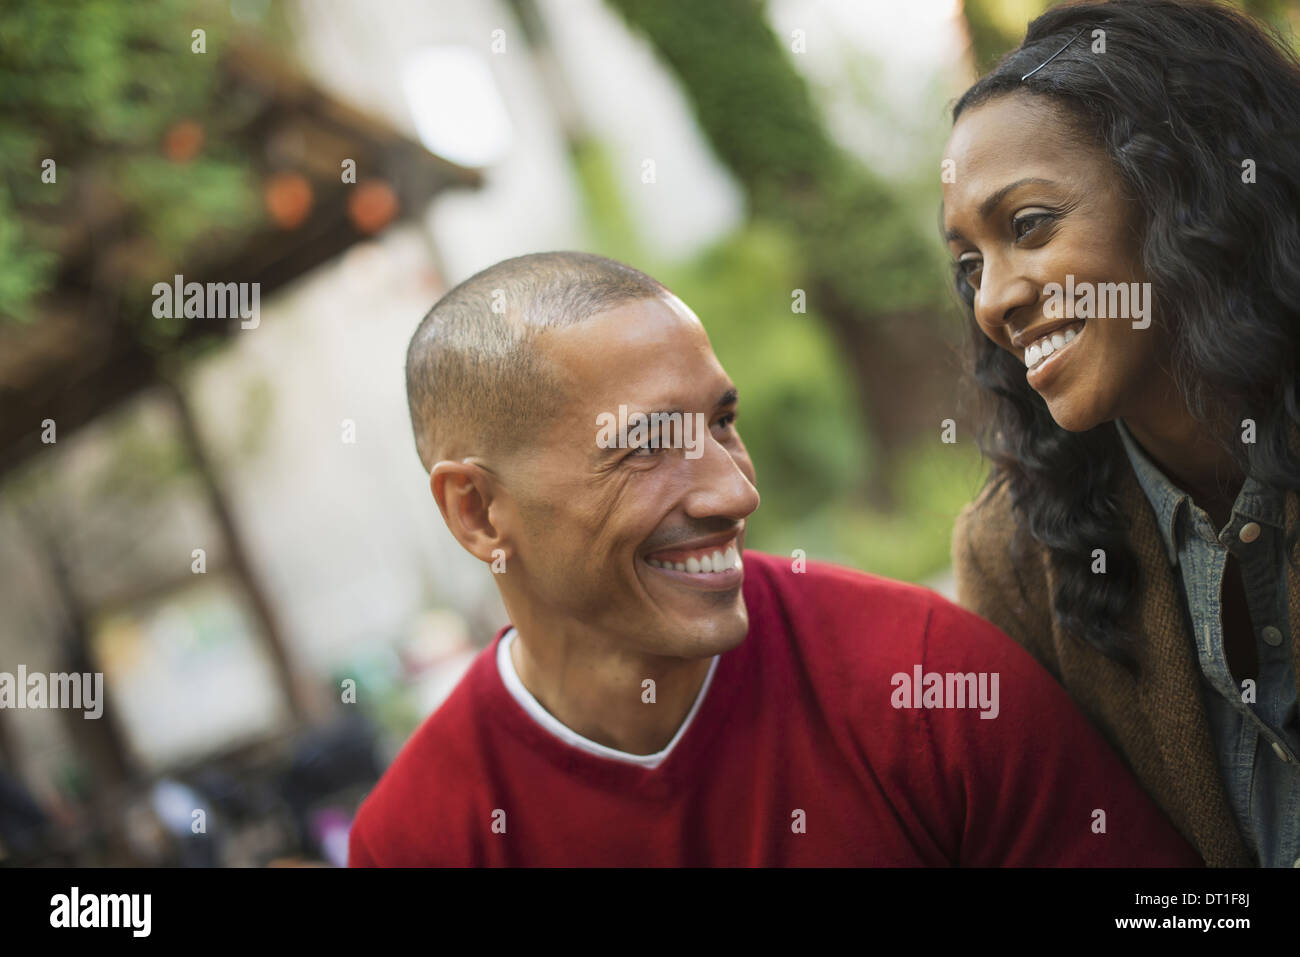 Scenes from urban life in New York City A man and a woman a couple Looking at each other Outdoors - Stock Image